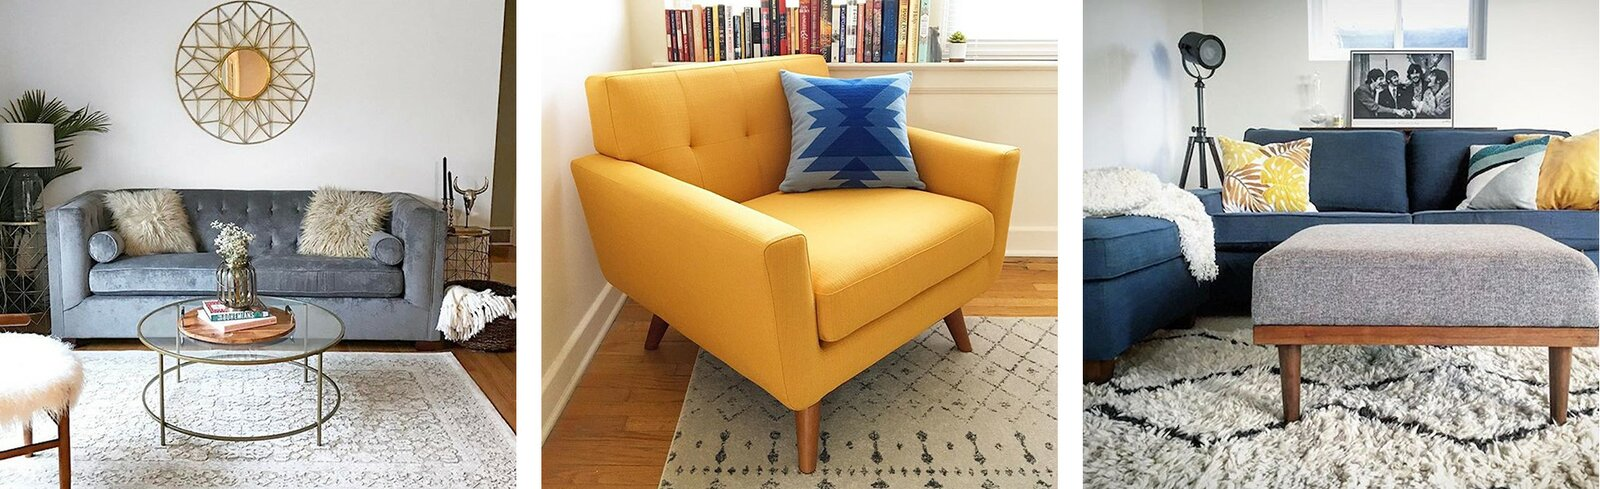 Home Modern Furniture capulet Modern Furniture And Decor For Your Home And Office